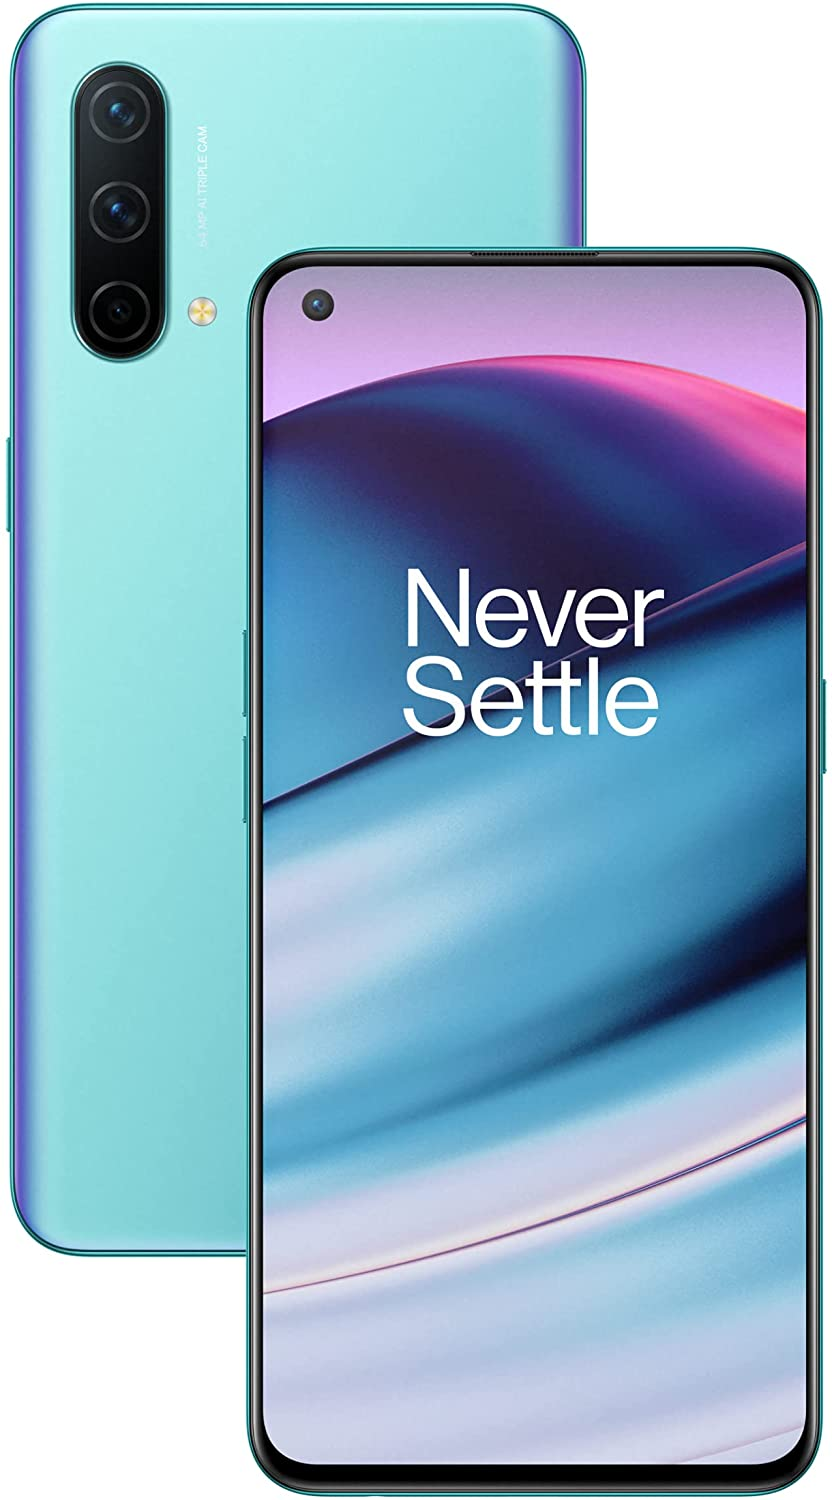 20210614 OnePlus Nord CE 5G